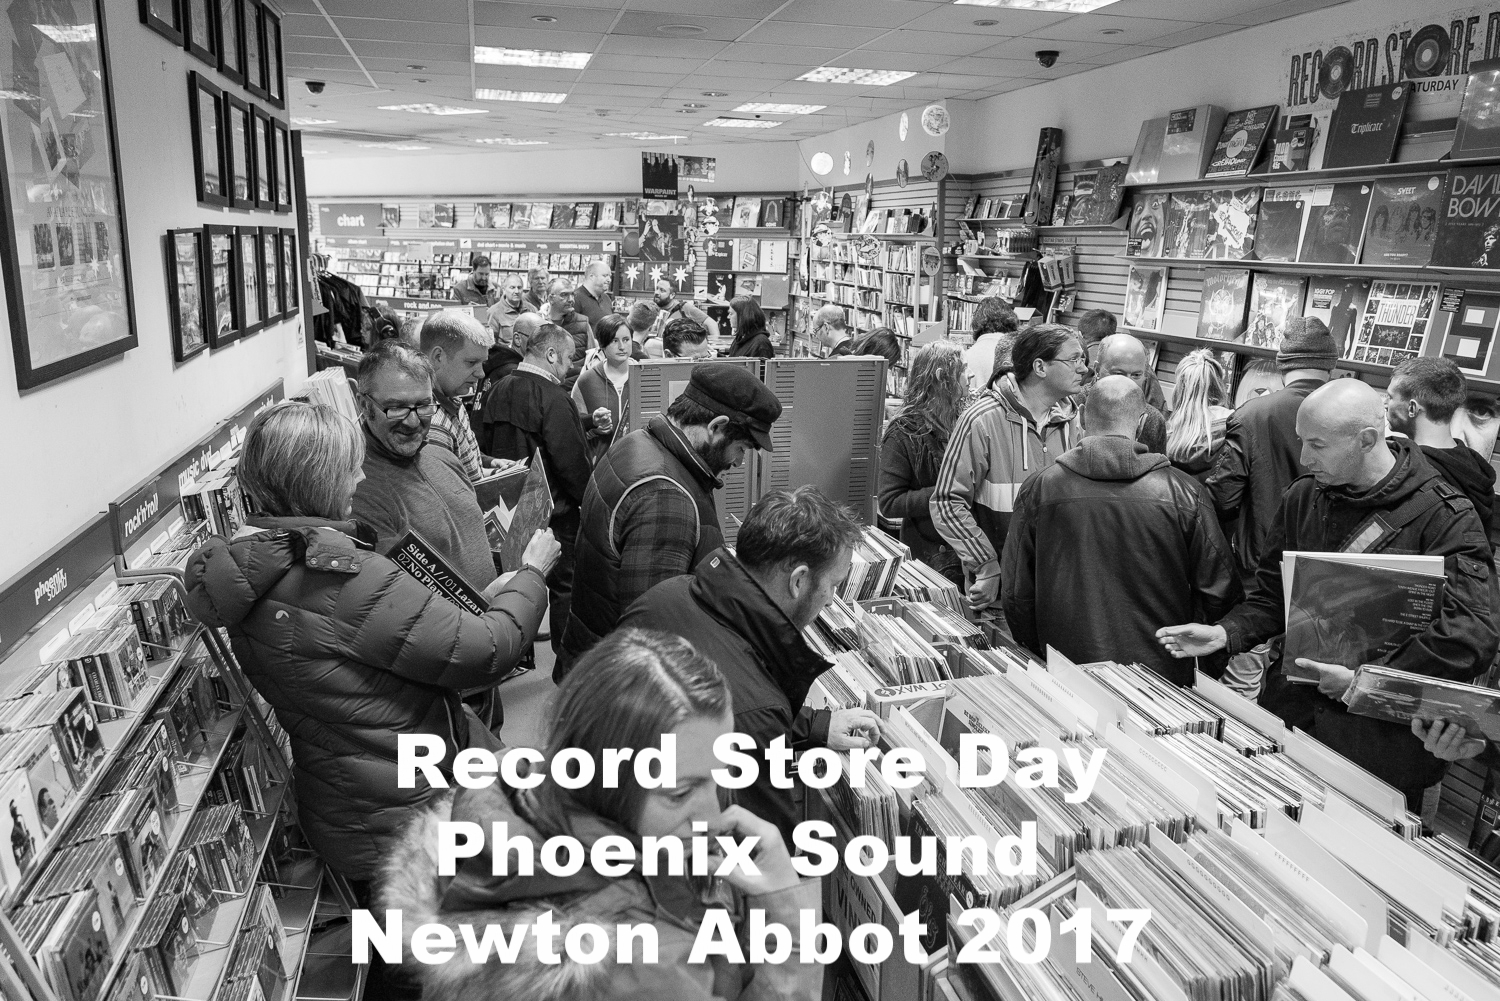 20170422-Record Store Day 2017-21424-37.jpg